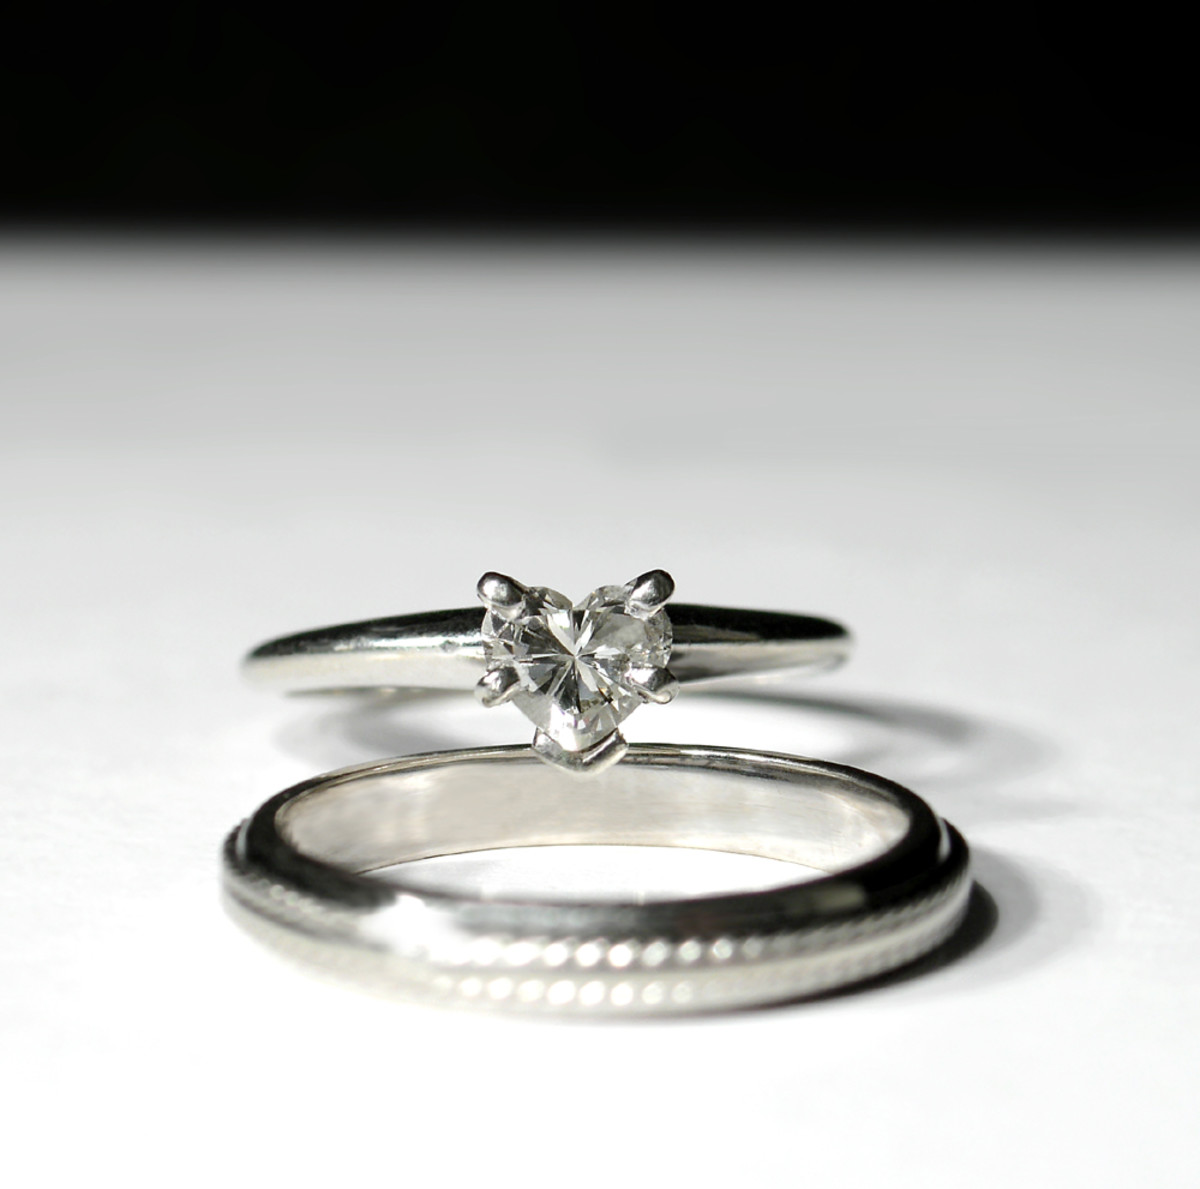 How much should an engagement ring cost hubpages for What should a wedding ring cost